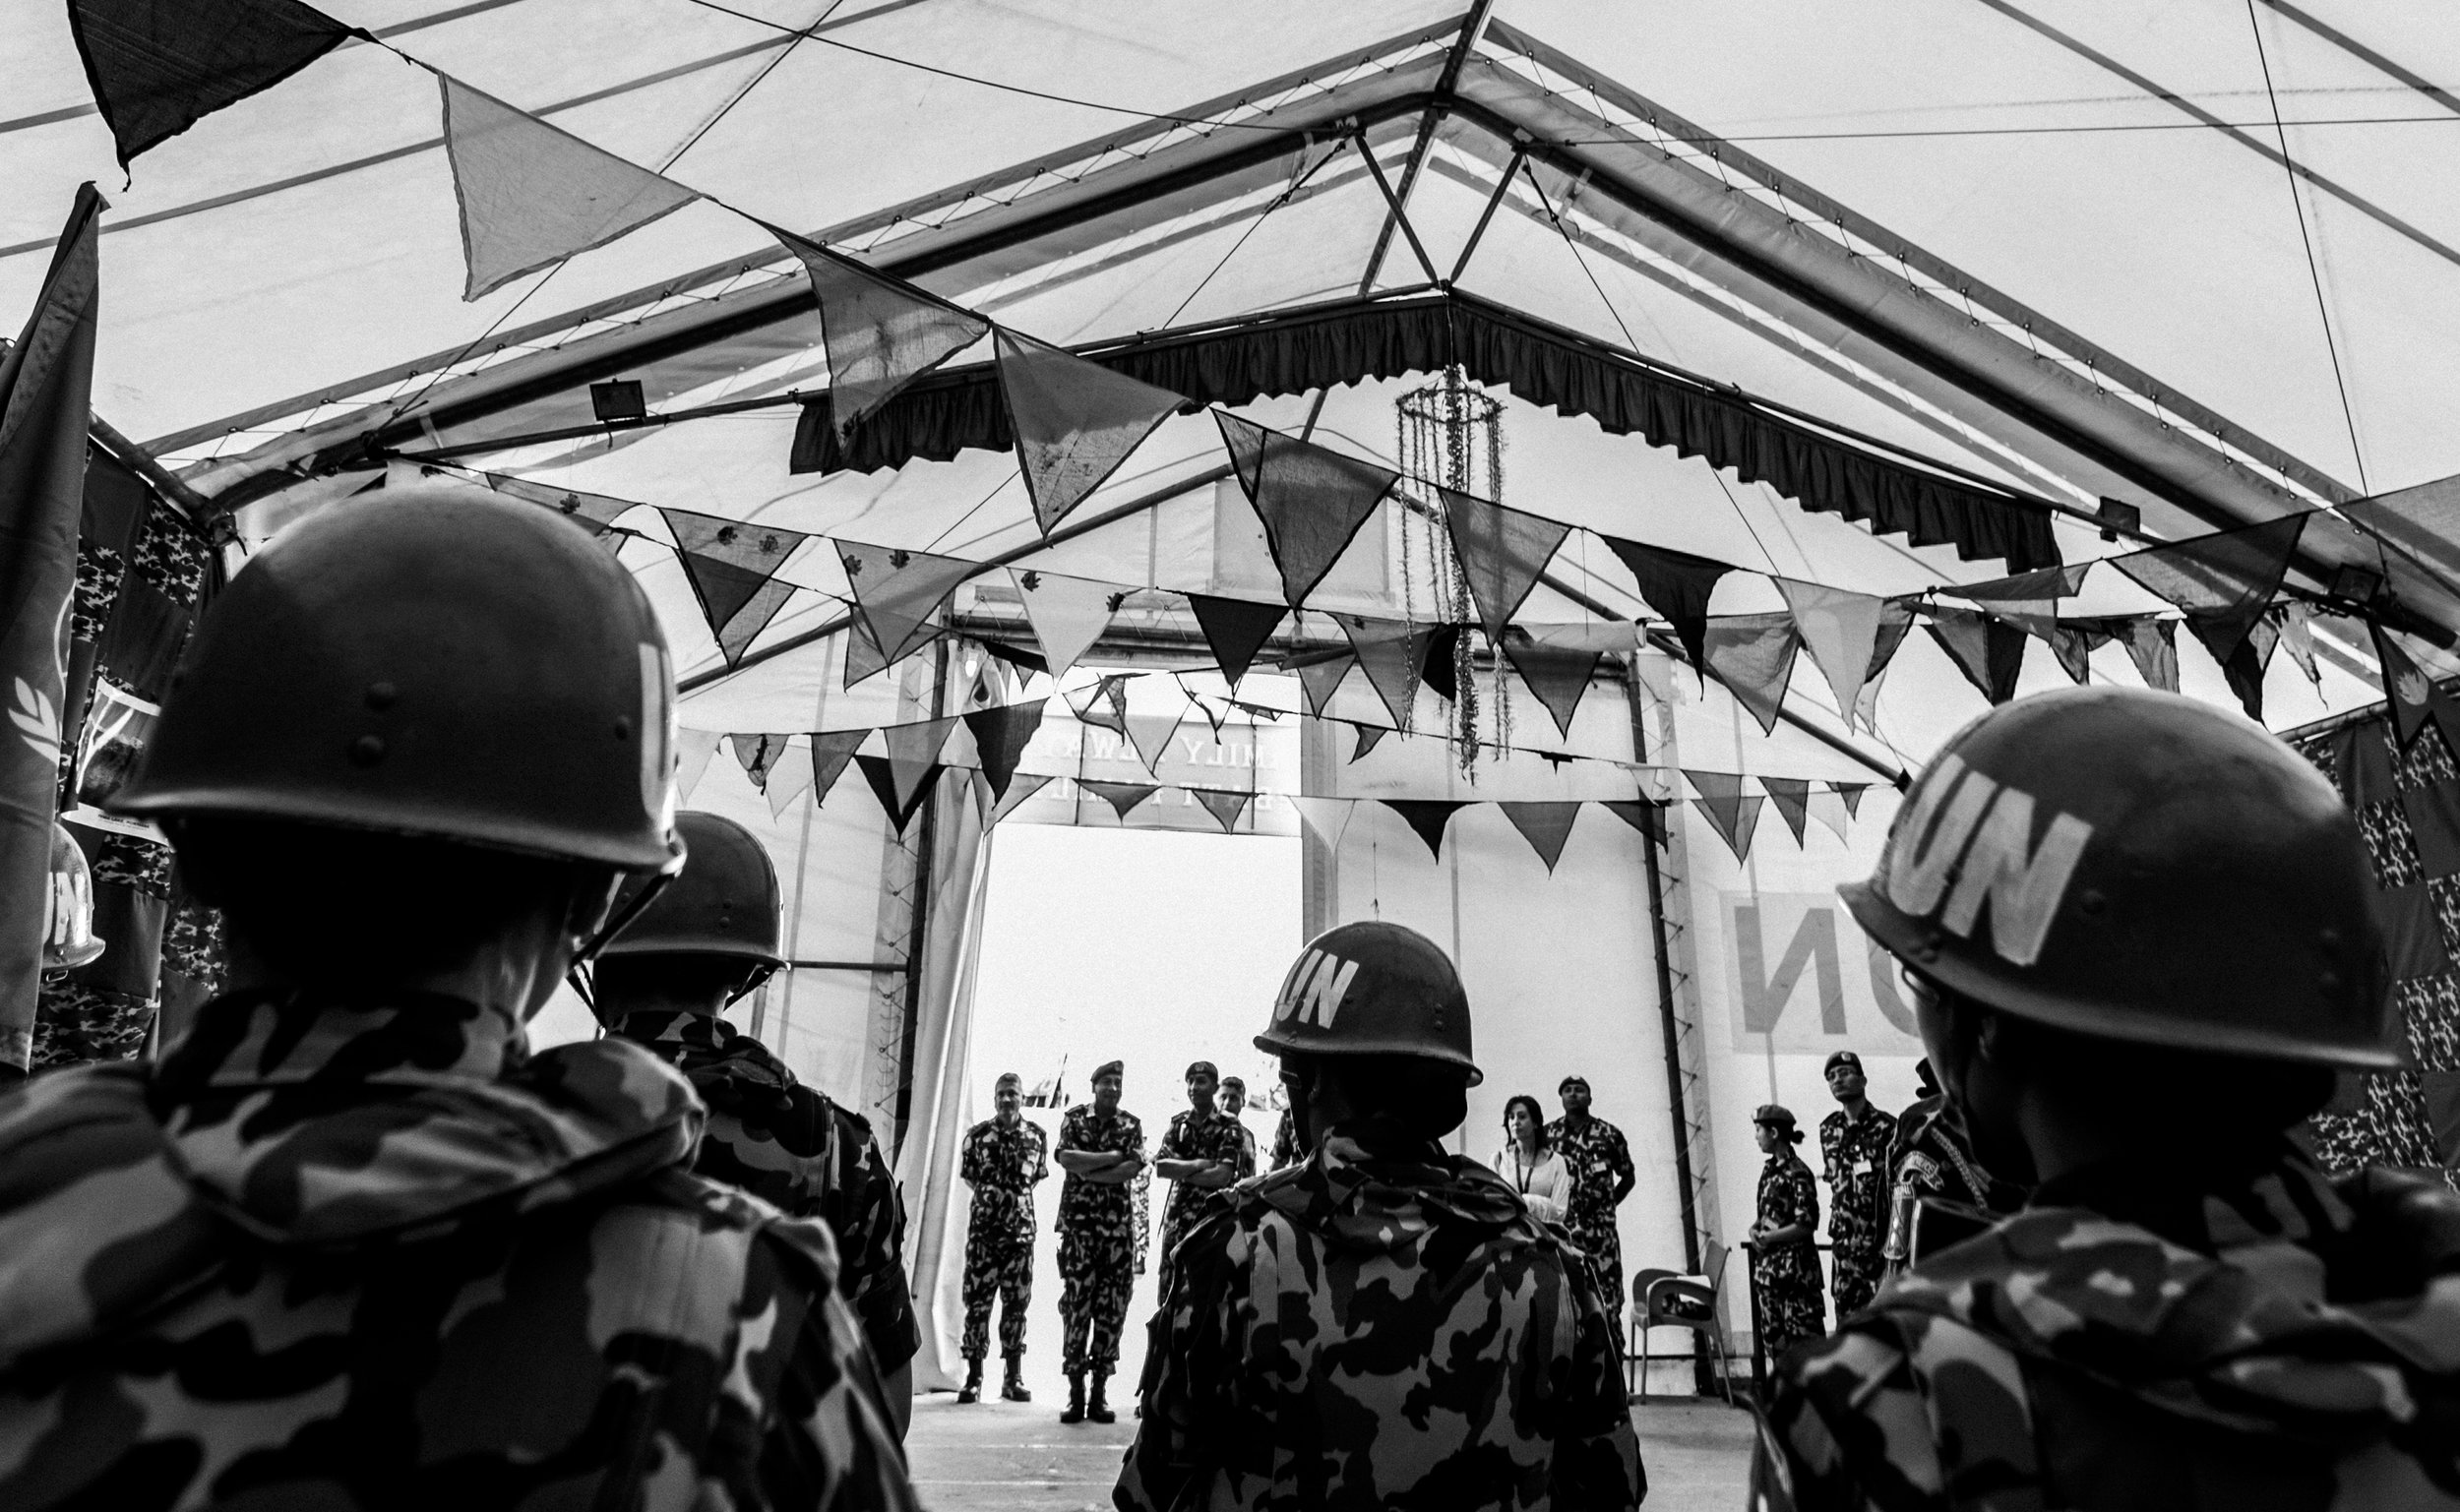 May 6, 2018, UNIFIL- Nepalese peacekeepers are briefed before going on a patrol.